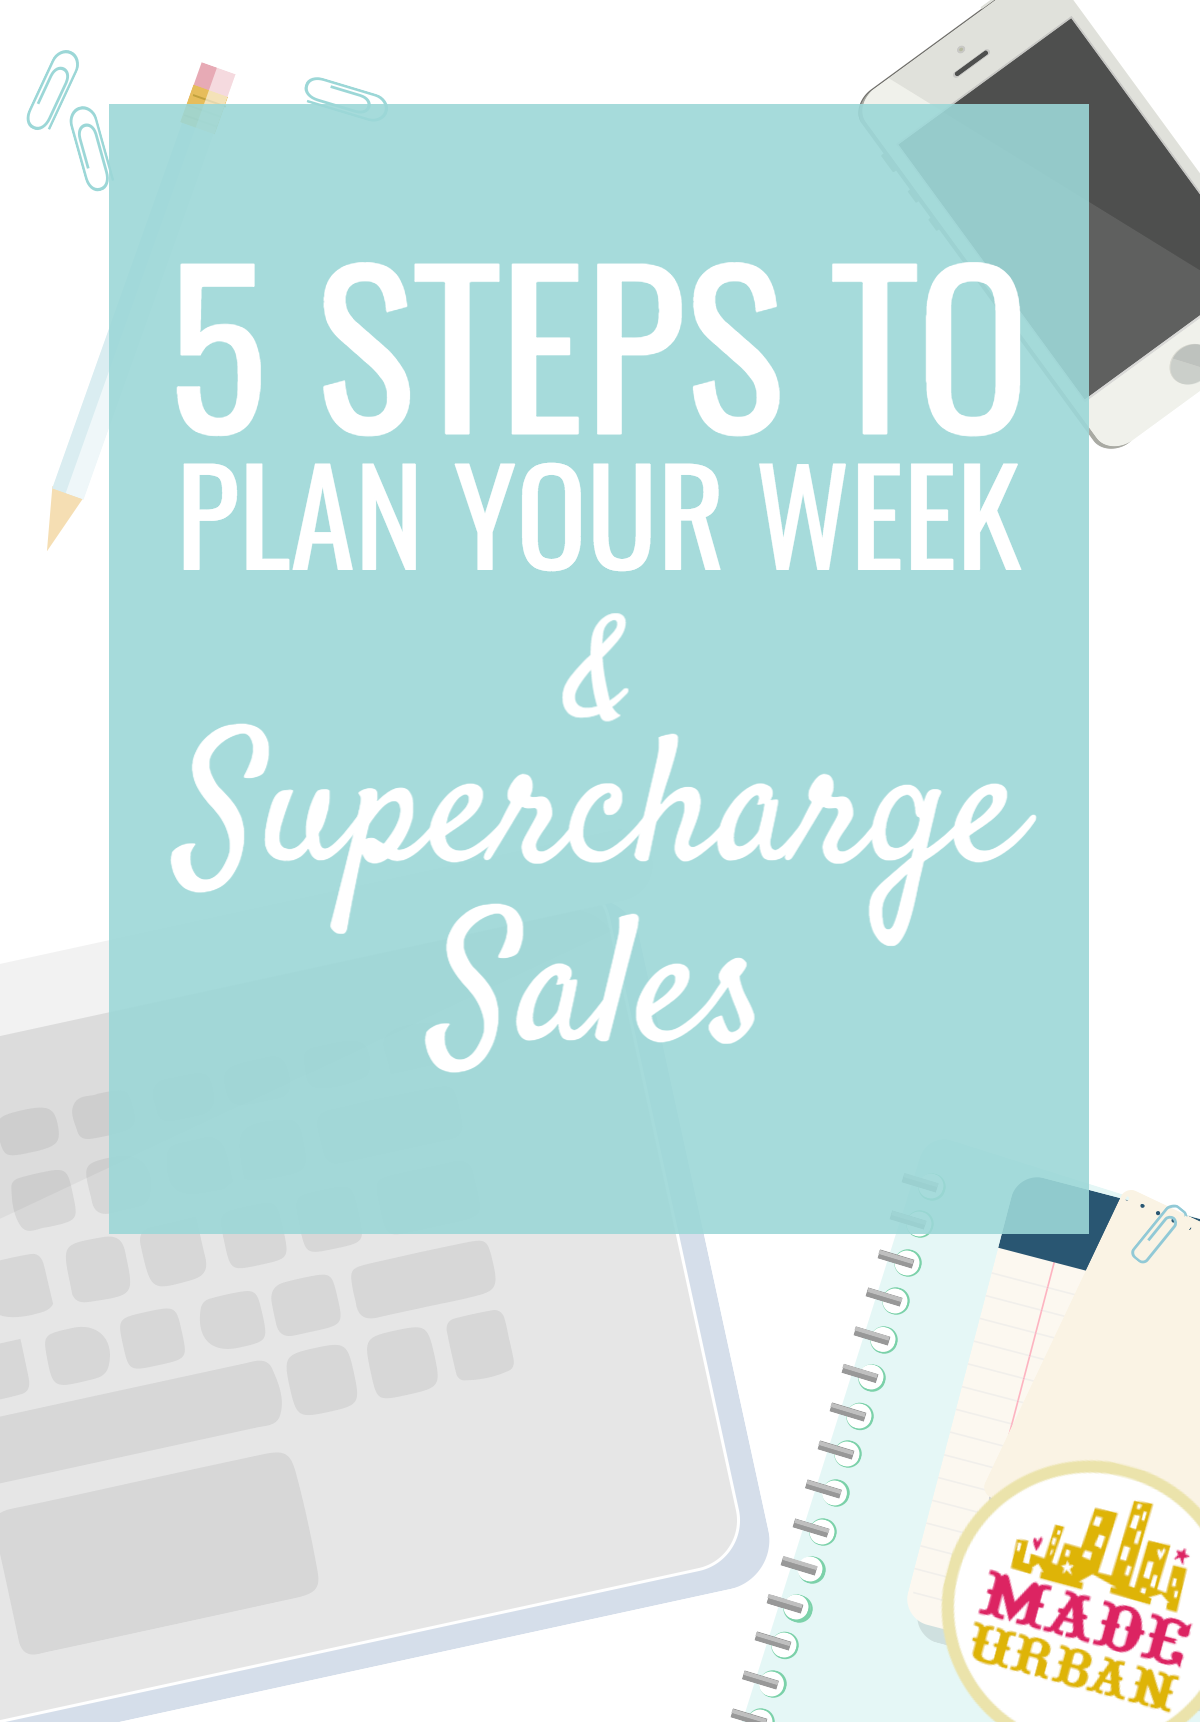 Plan your schedule to drive sales and stop having unproductive days reacting to your handmade business. Follow these 5 steps to finally get organized.